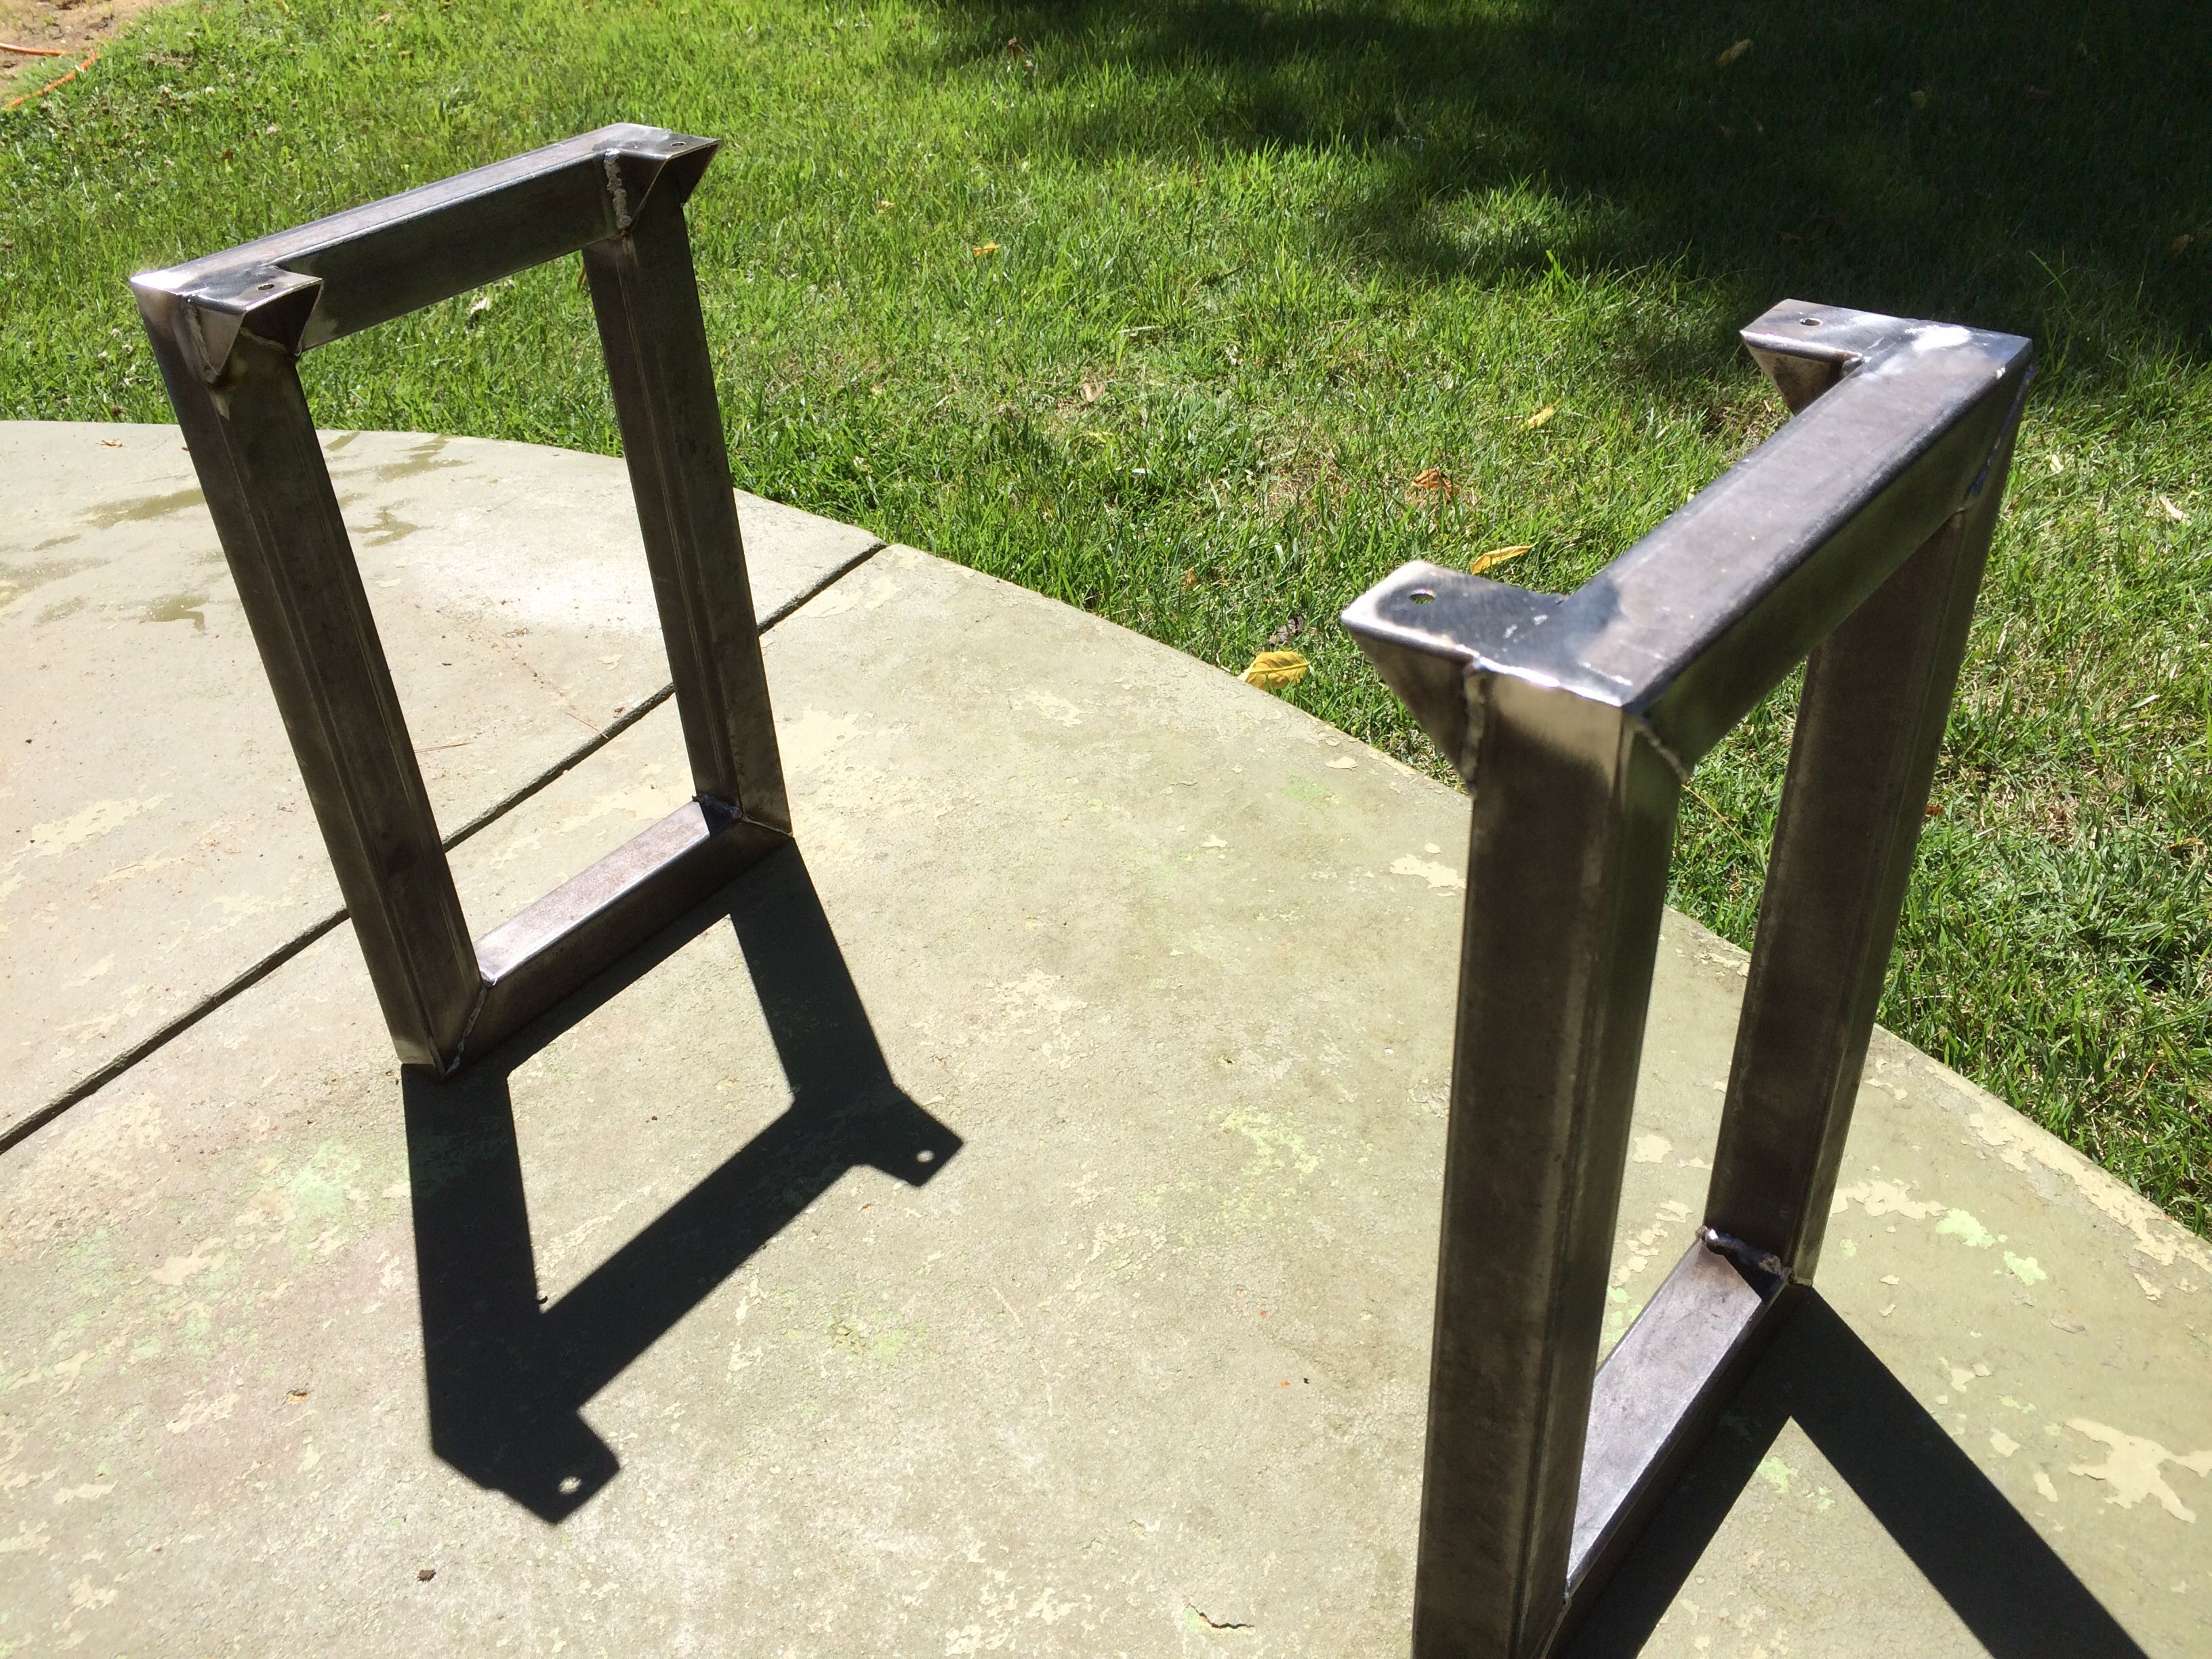 Metal Bench Legs Just Add Your Own 2X10 Or 2X12